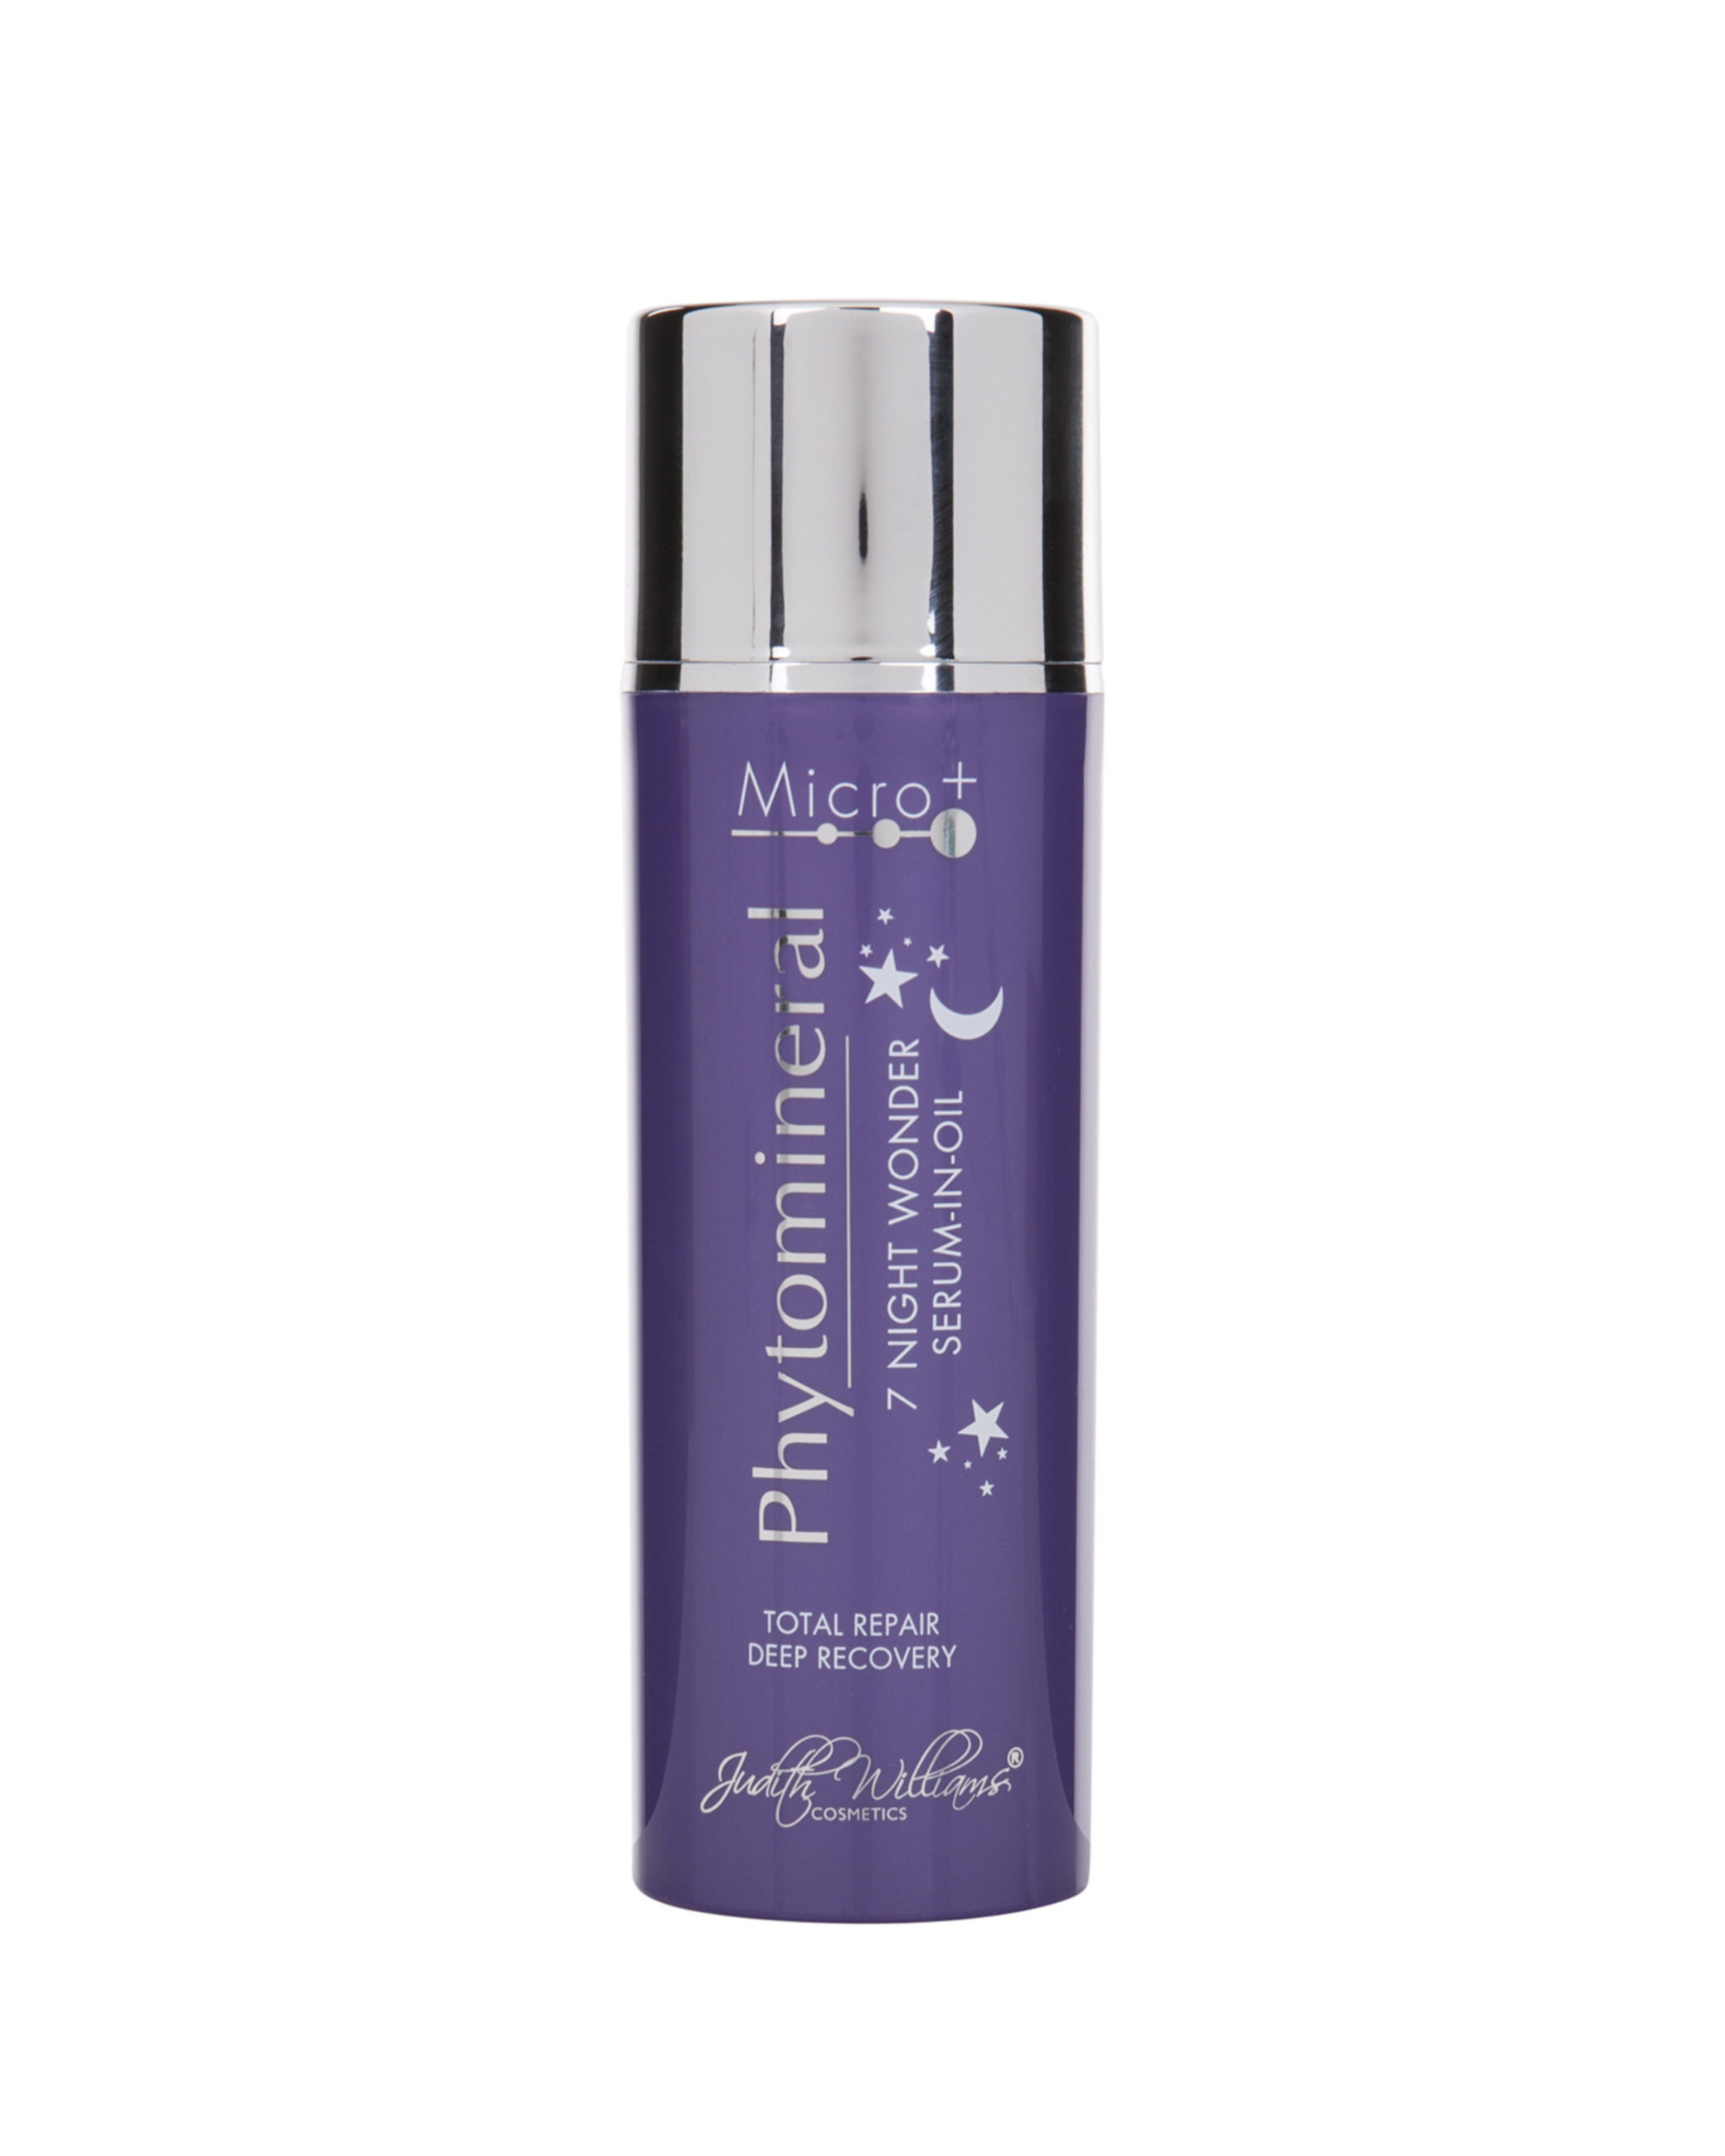 Judith Williams Phytomineral 7 Night Wonder Serum In Oil Hse24 Beauty Kosmetik Kosmetik Online Shoppen Shoppen